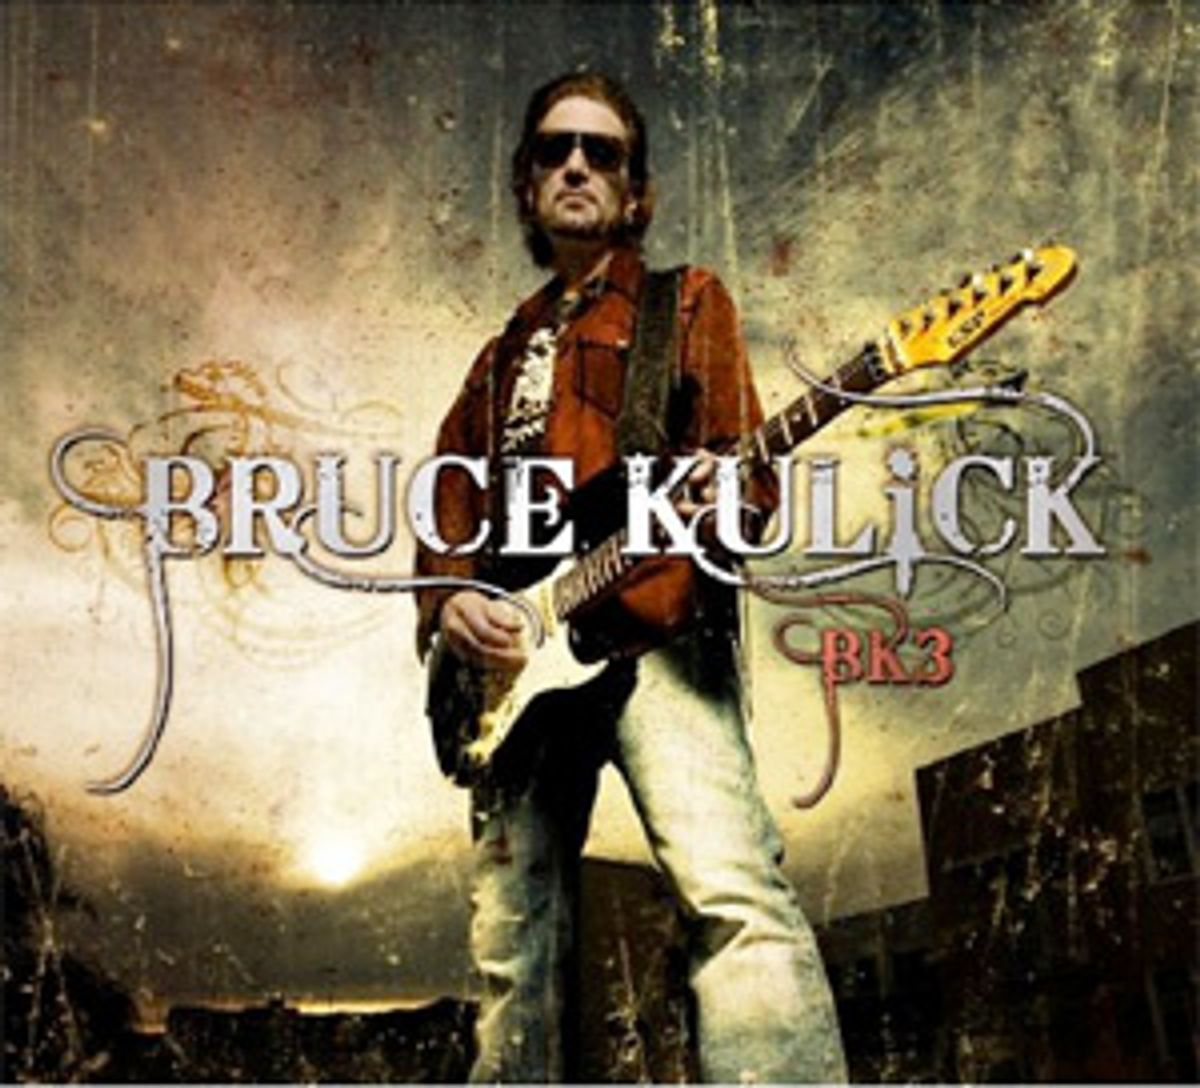 Interview: Bruce Kulick Discusses Gear and Recording for BK3